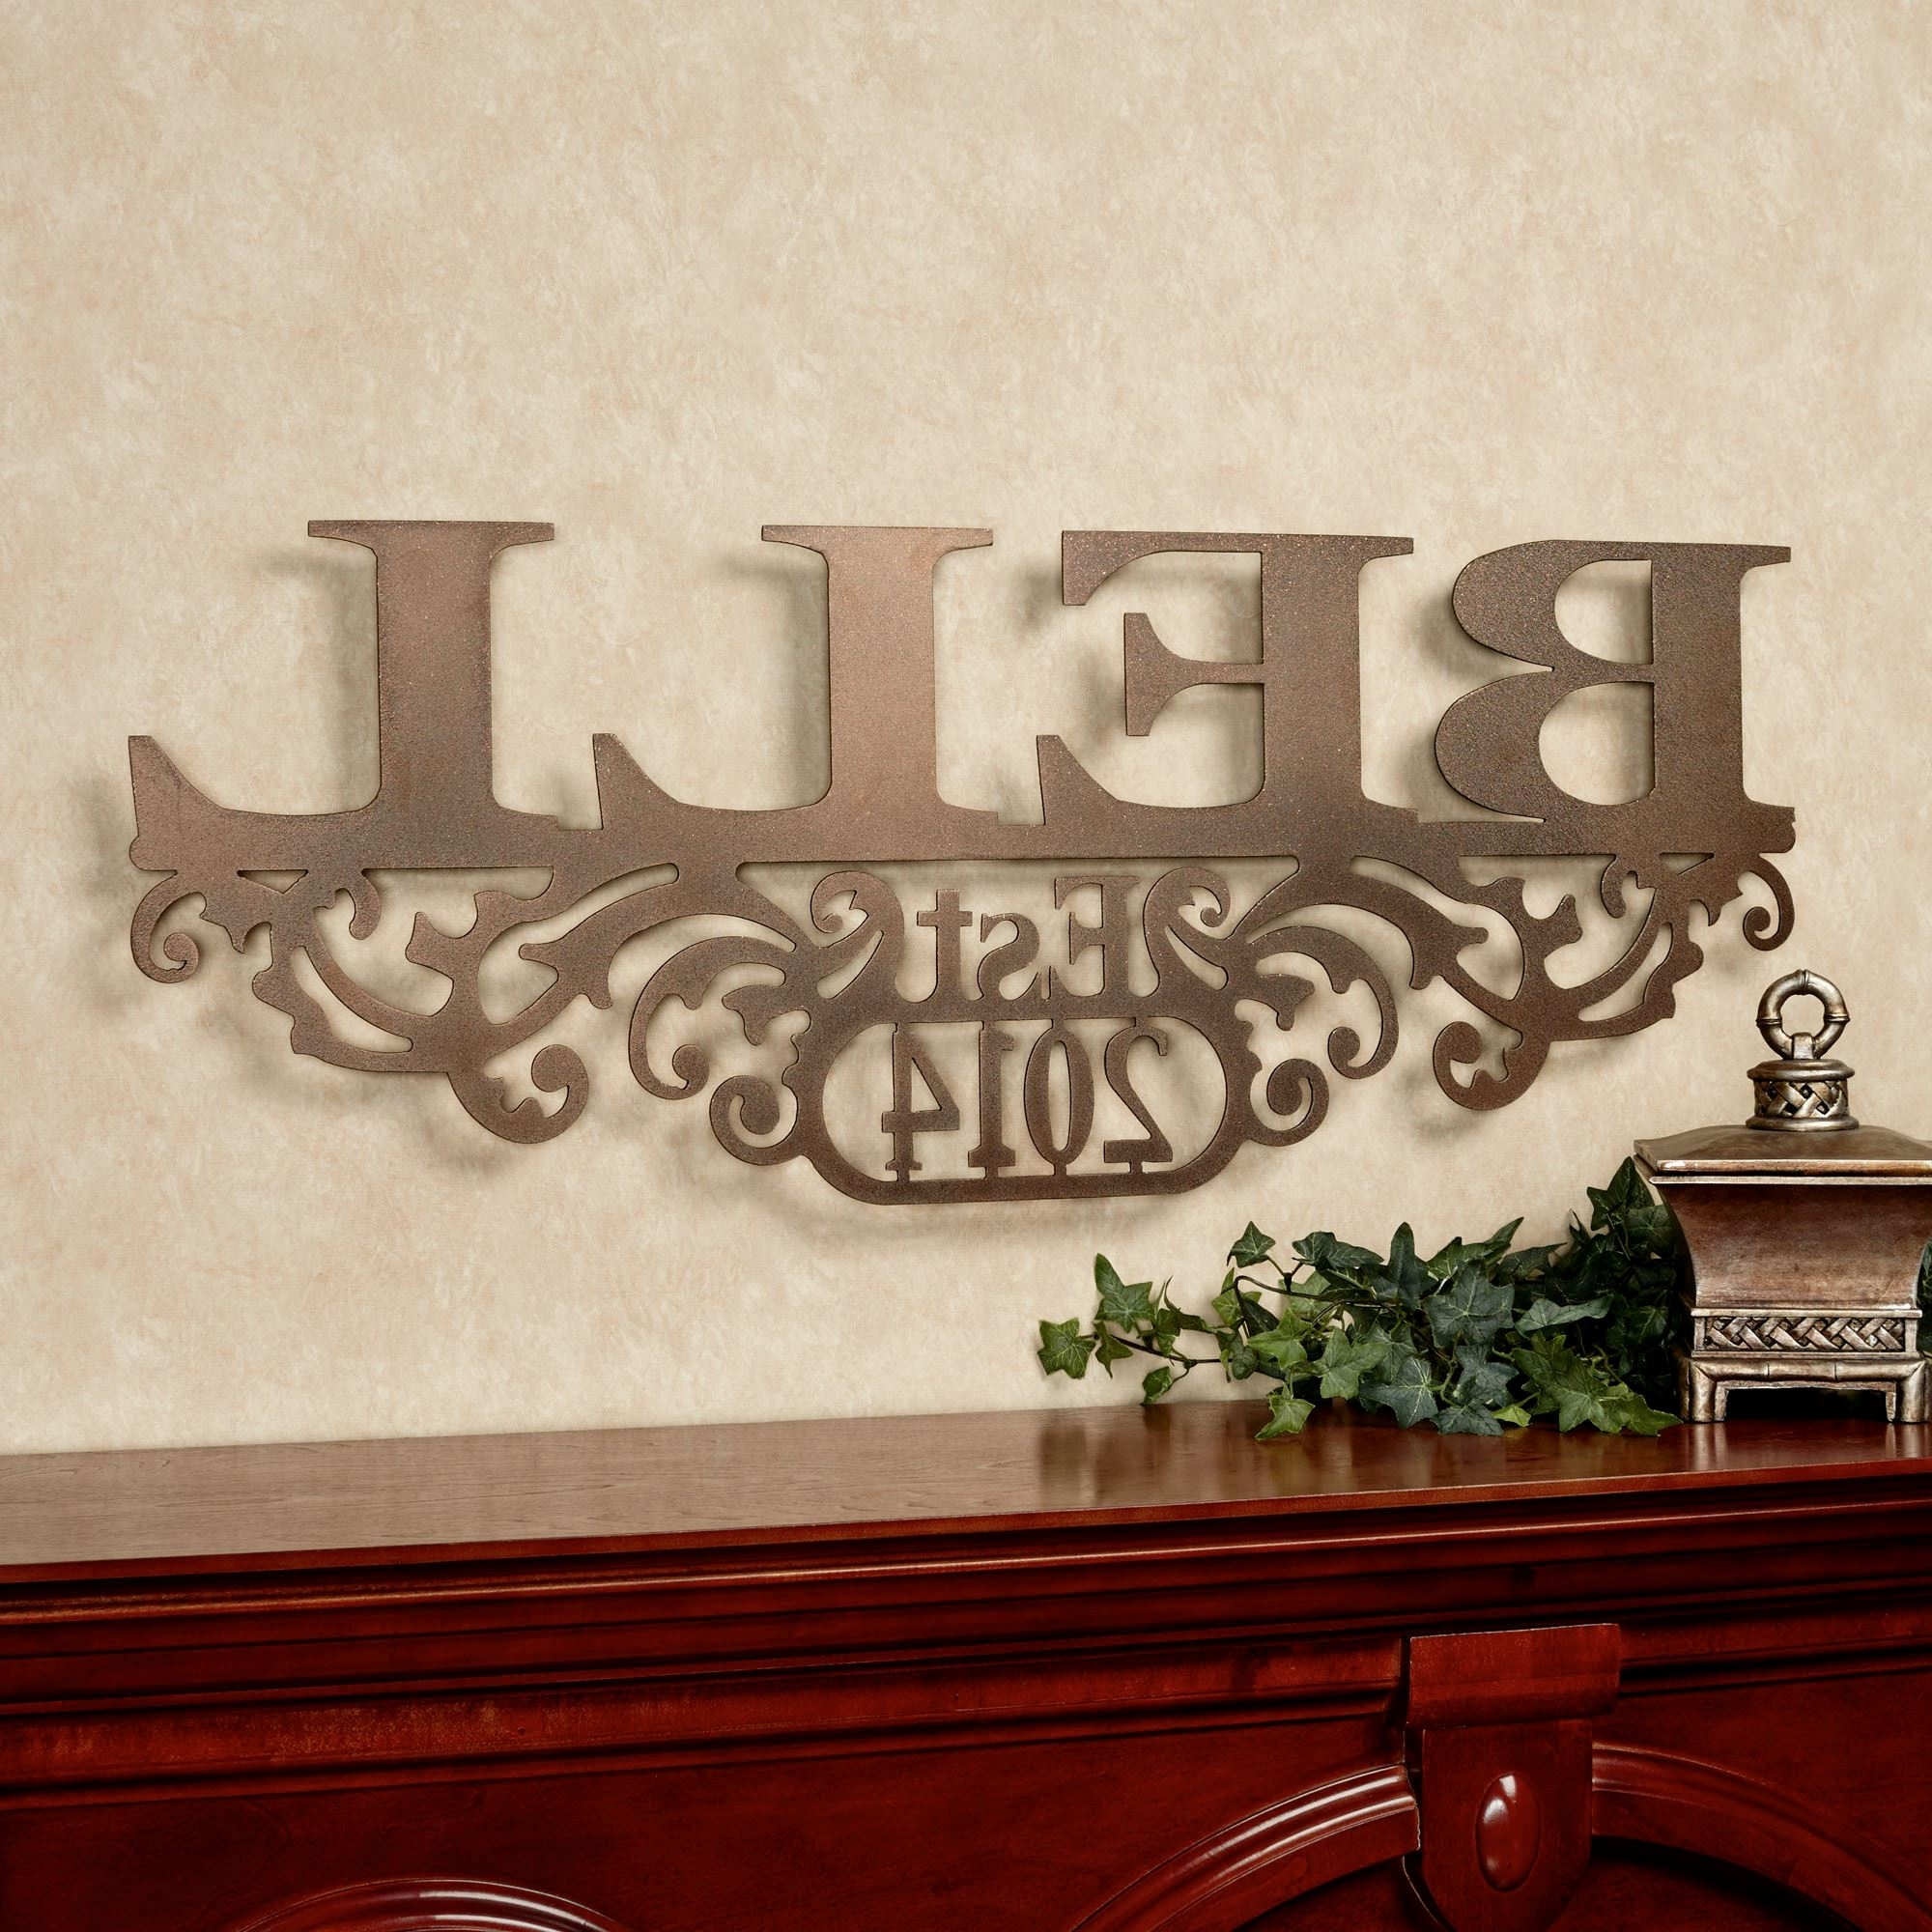 Preferred Personalized Family Wall Art In Kinship Bronze Family Name And Year Personalized Metal Wall Art Sign (View 6 of 15)